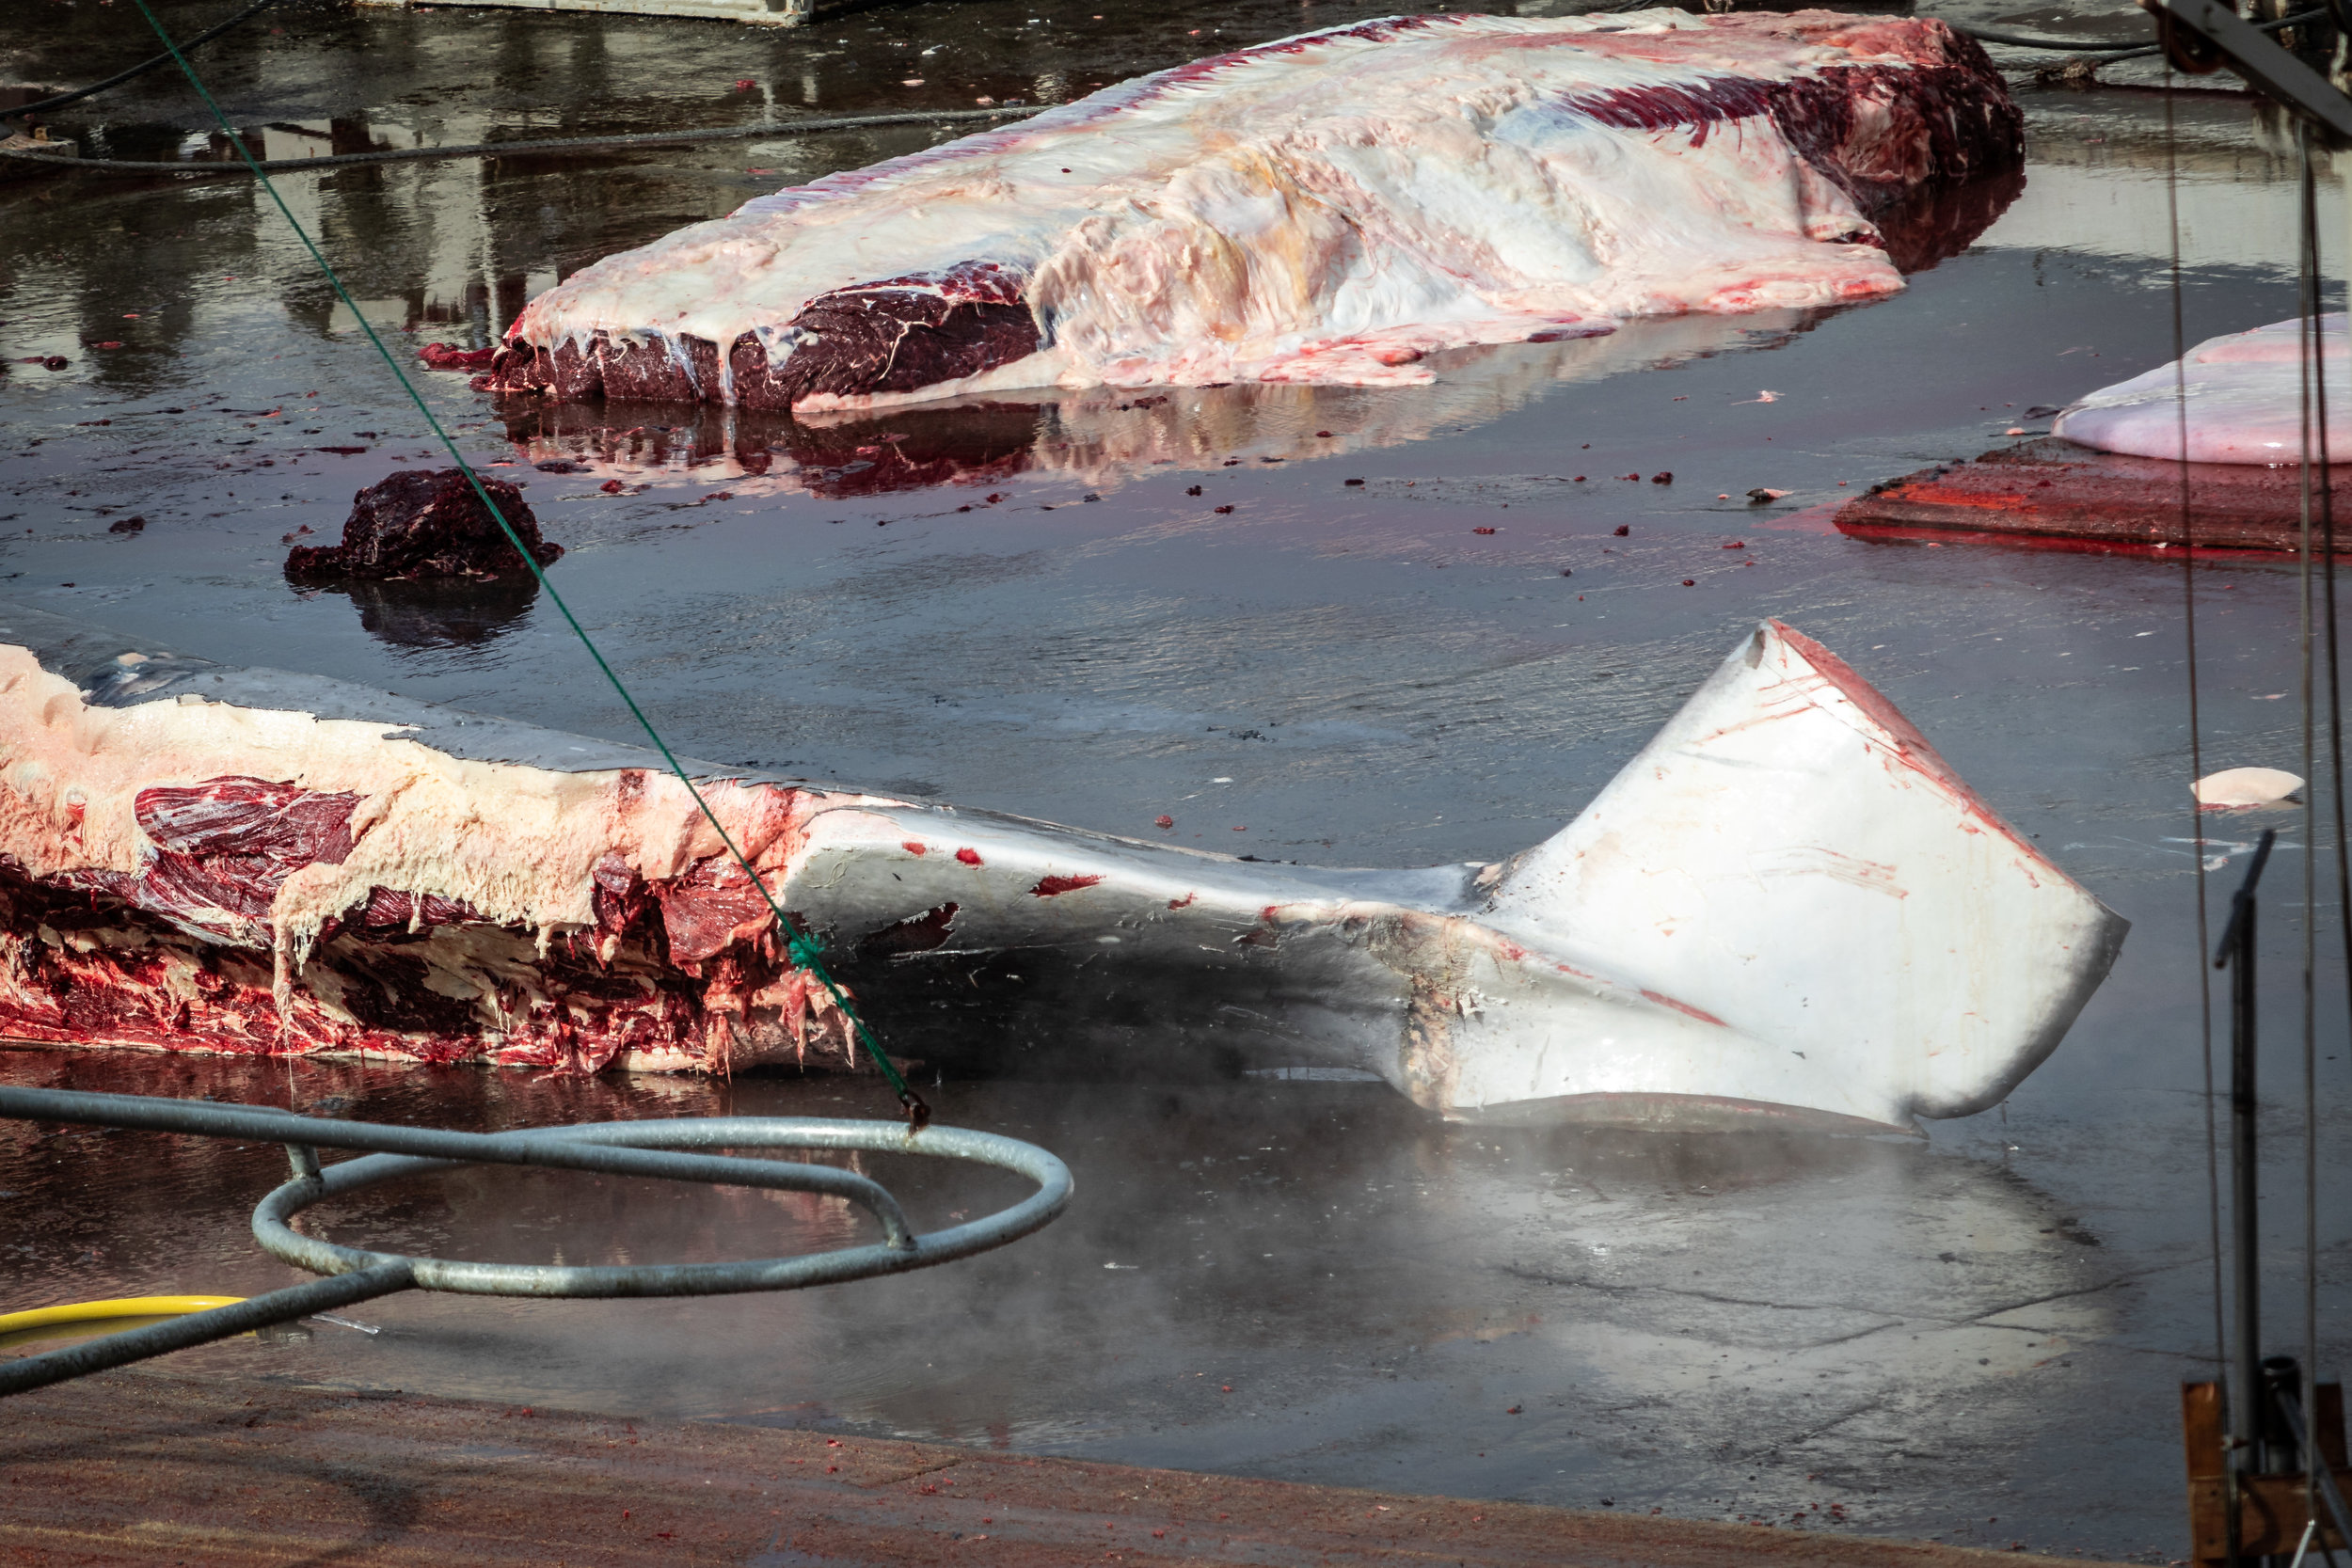 The tail of the whale now visible as she's been flipped over. Whale meat visible in the background.